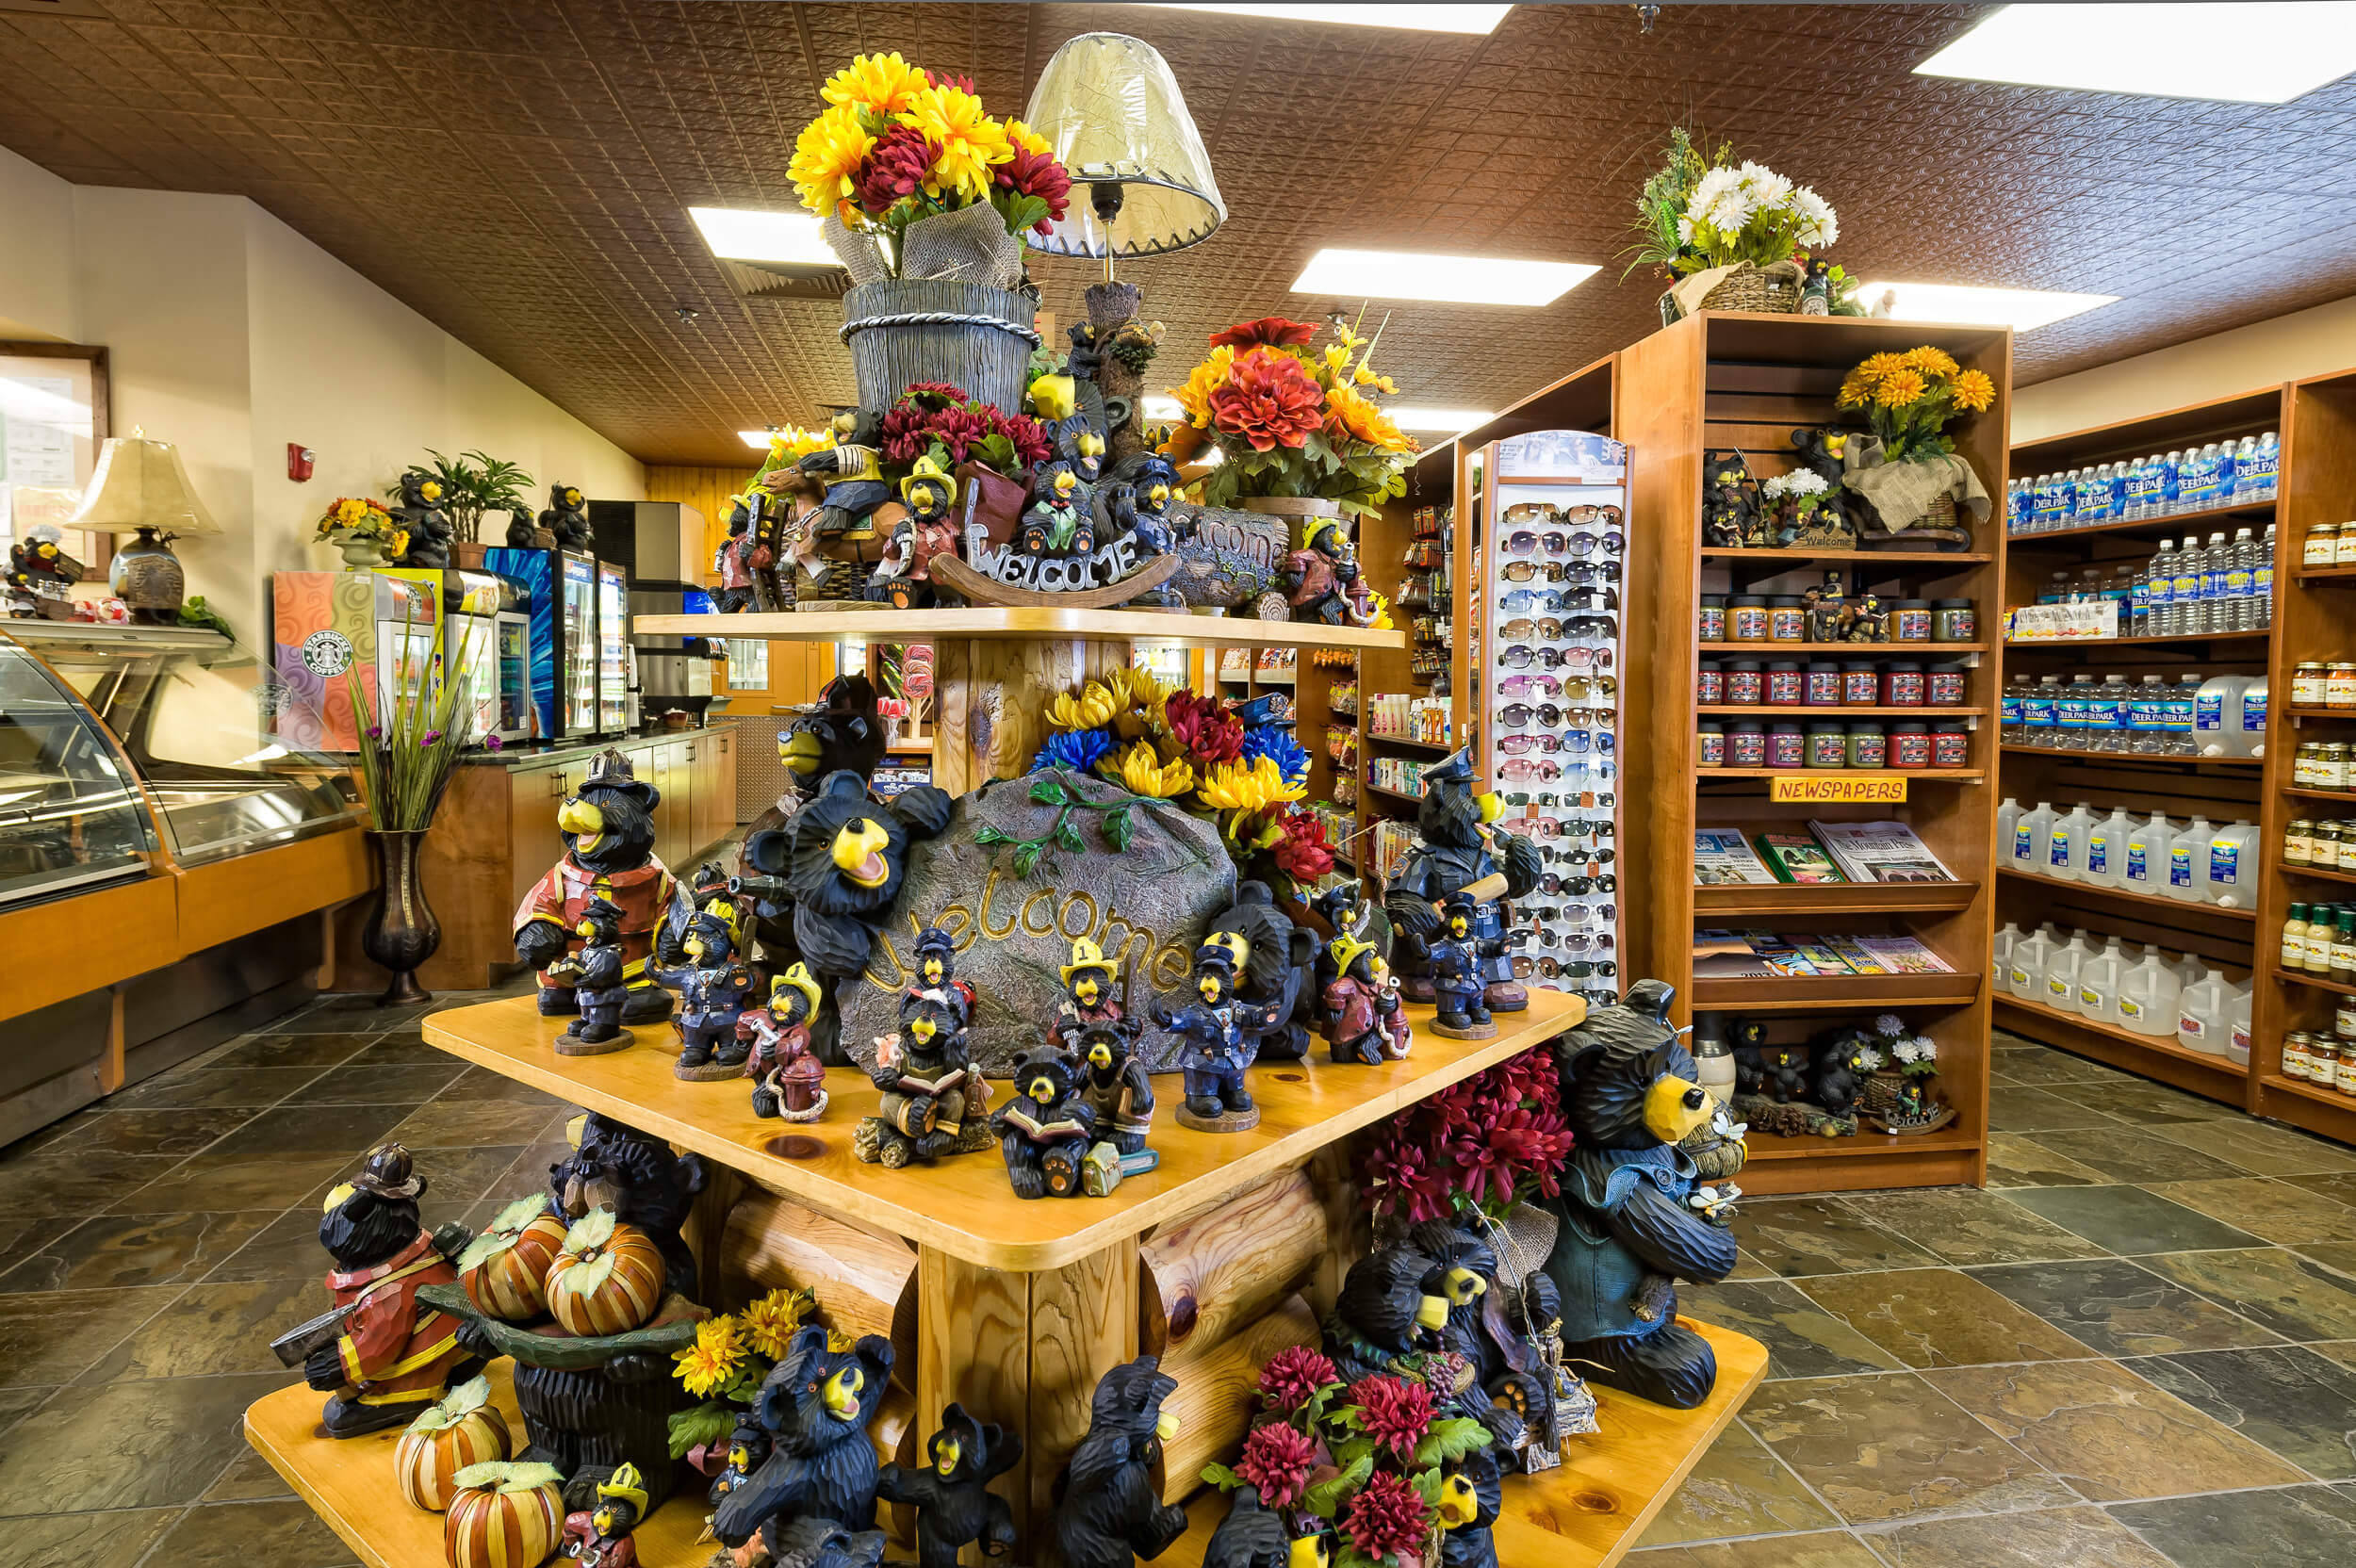 Smoky Mountain collectibles in the Marketplace | Westgate Smoky Mountain Resort & Spa